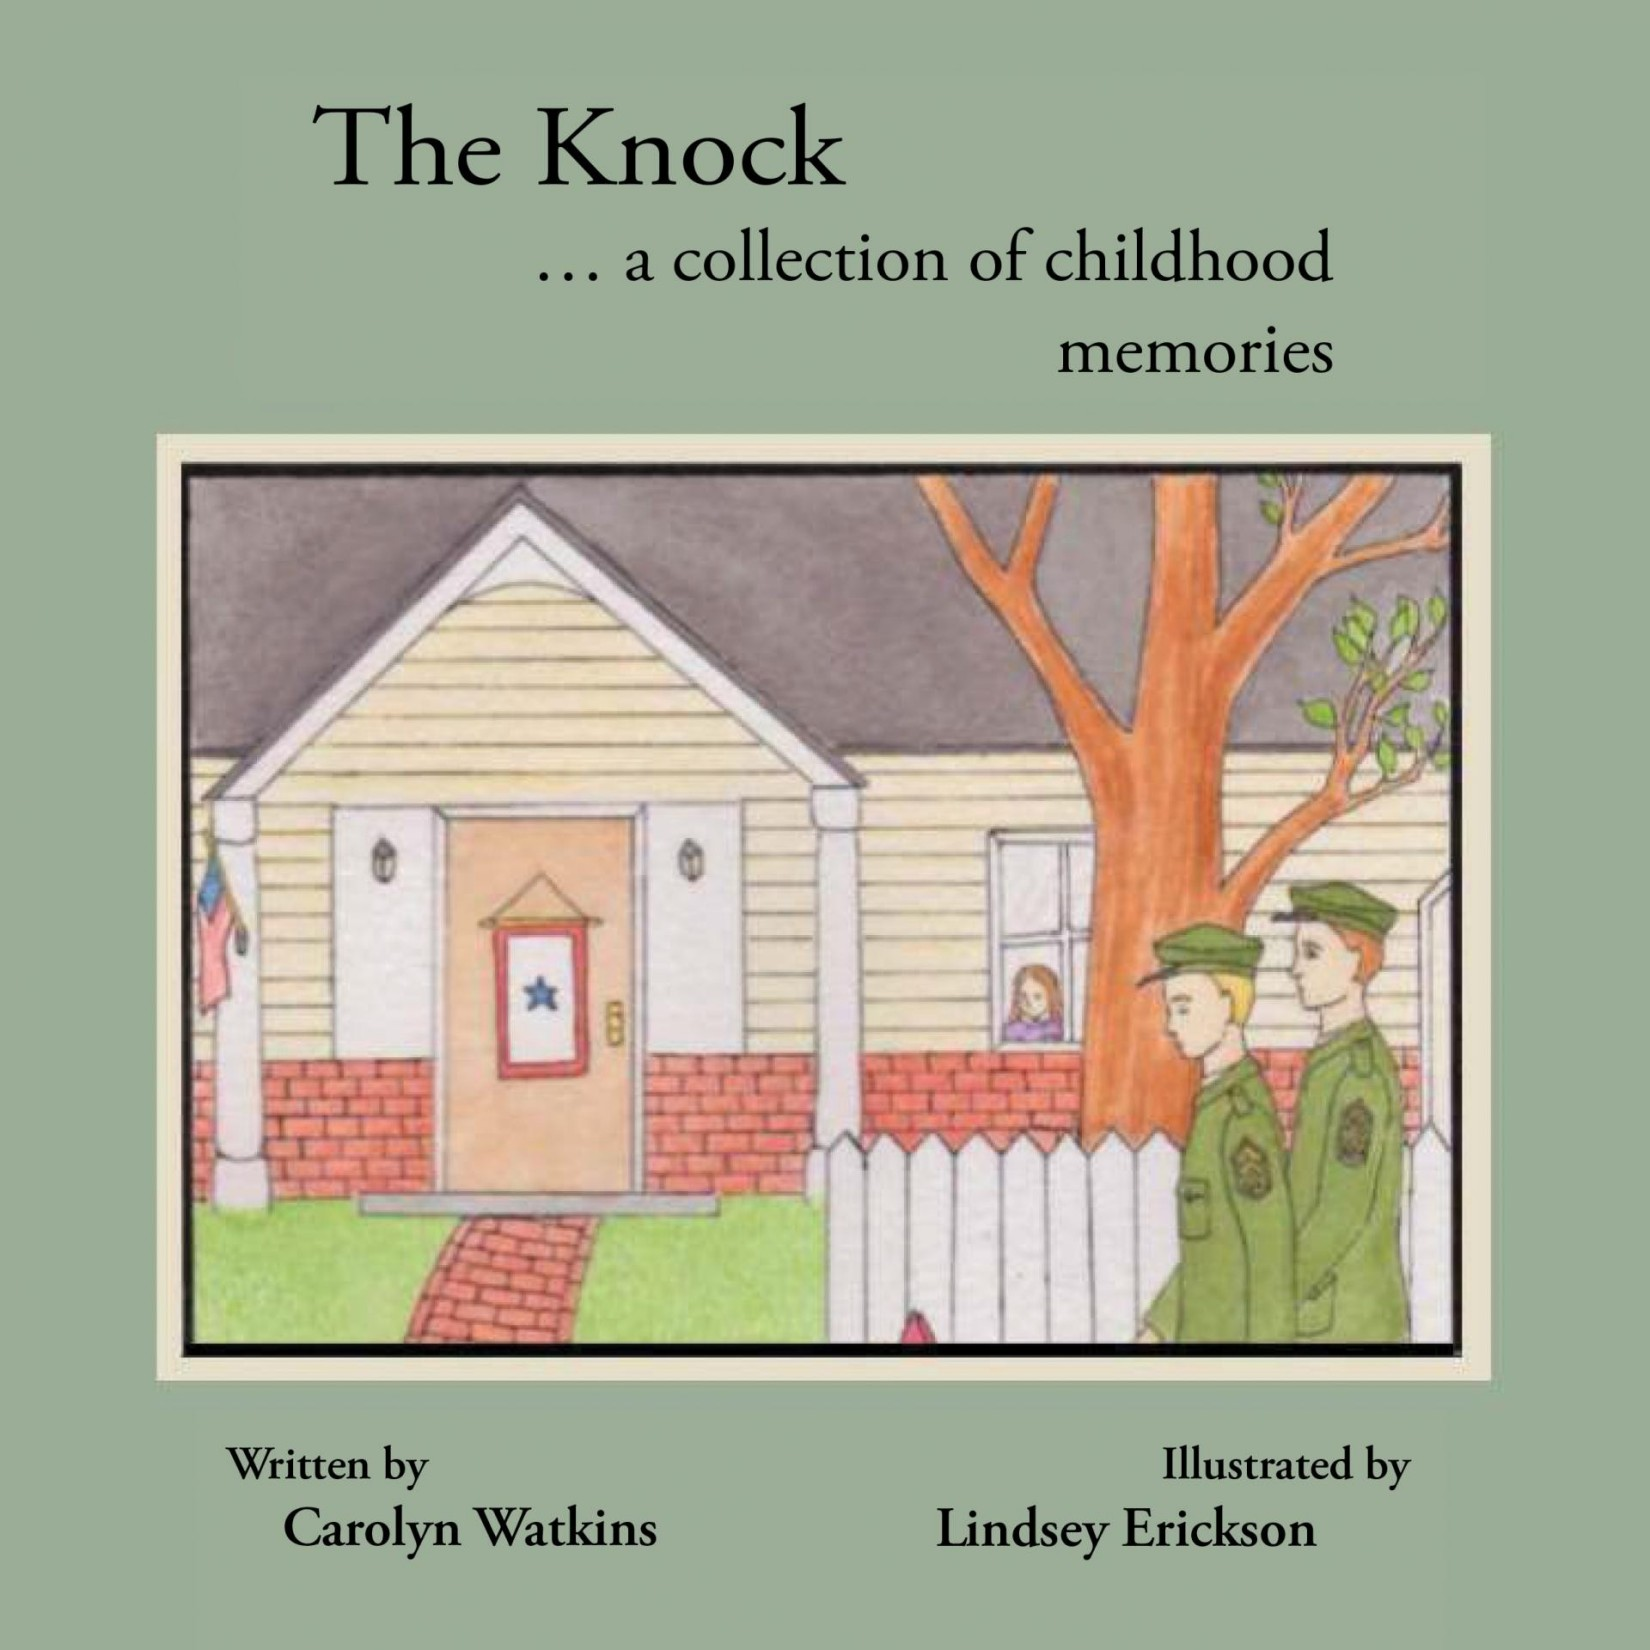 """The Knock… A Collection of Childhood Memories"" by Carolyn Watkins is released, a children's book about living in a military family, support networks, and not feeling alone"